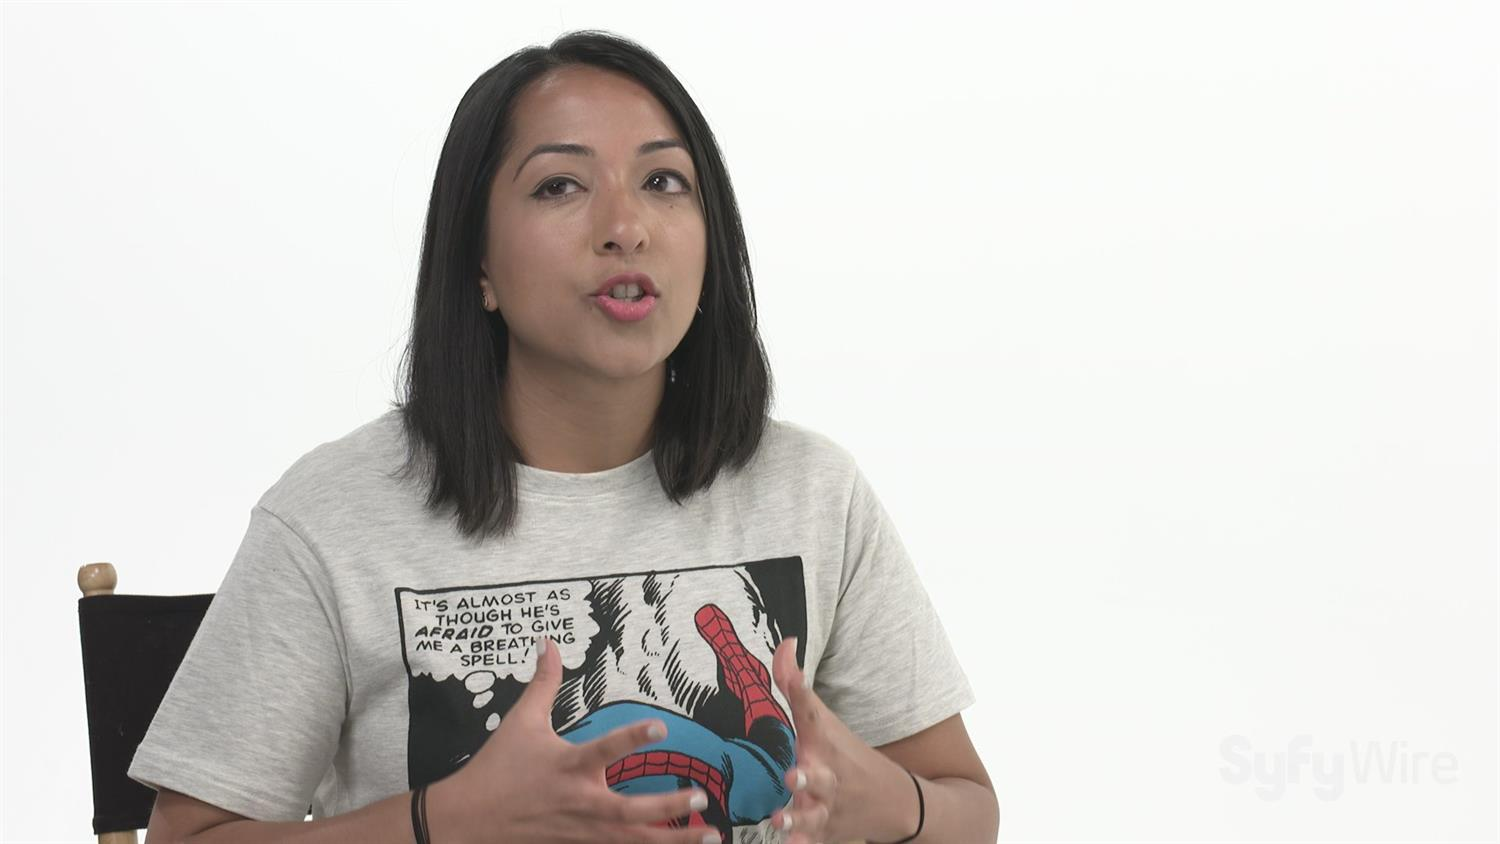 Marvel's Sana Amanat on the Captain Marvel Movie